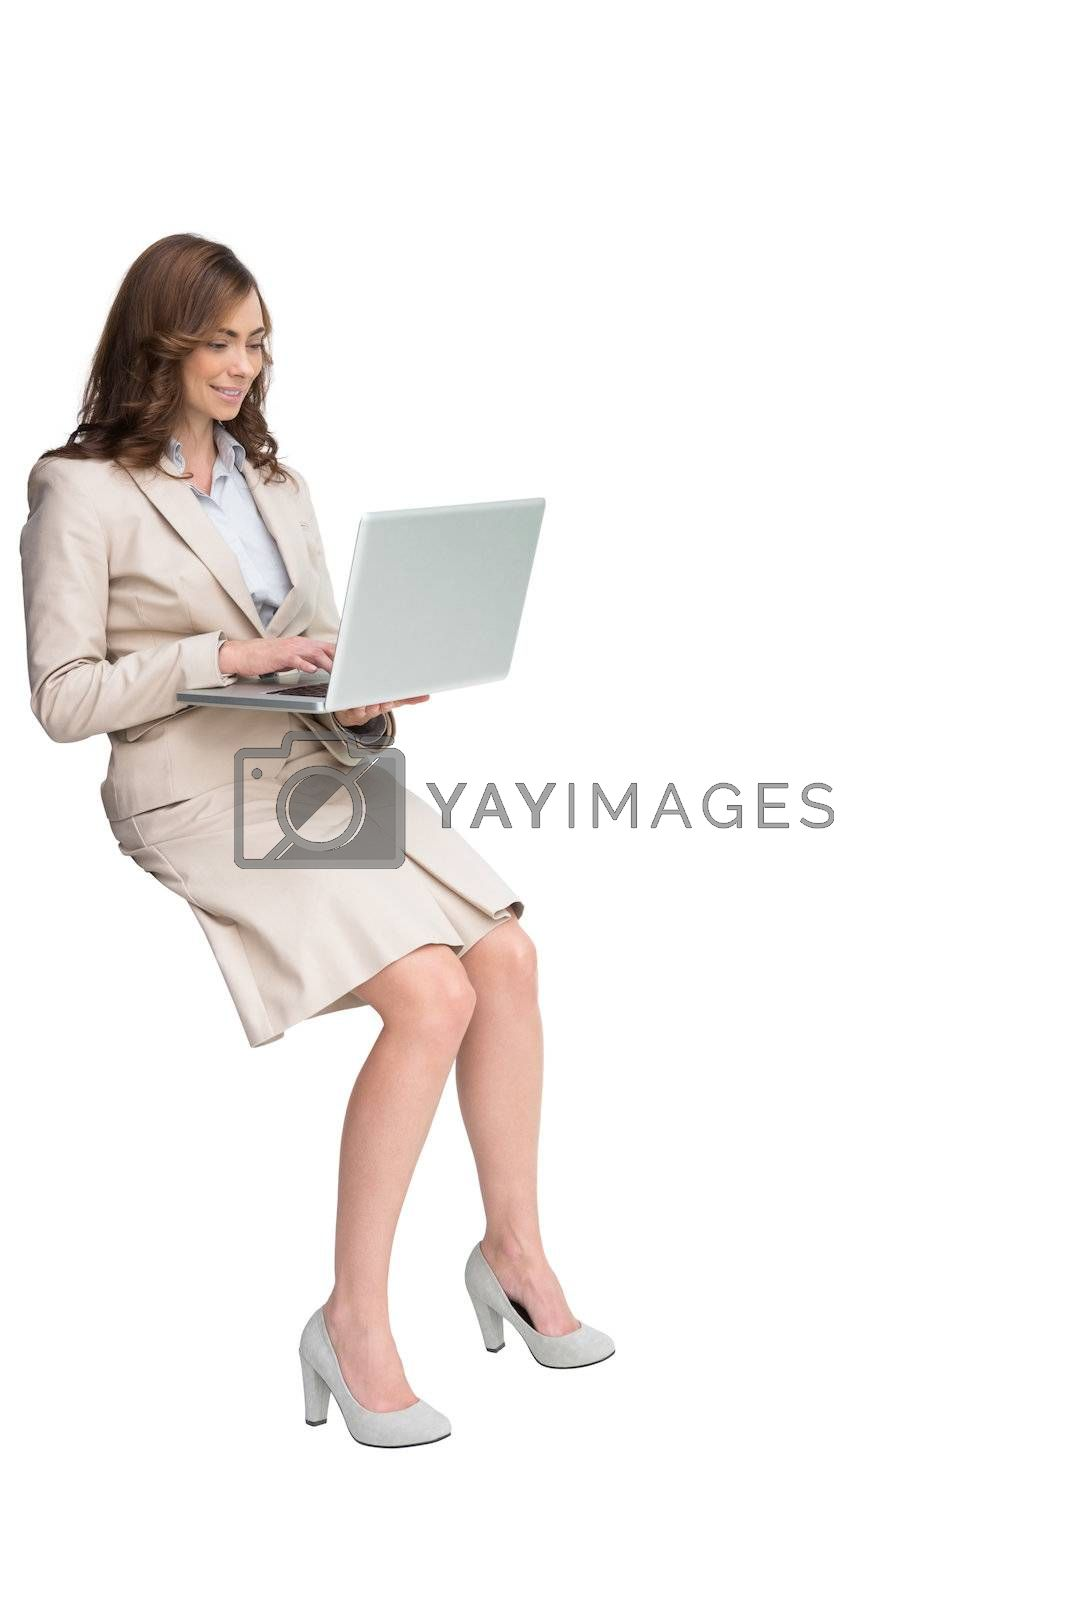 Smiling businesswoman sitting and using laptop by Wavebreakmedia